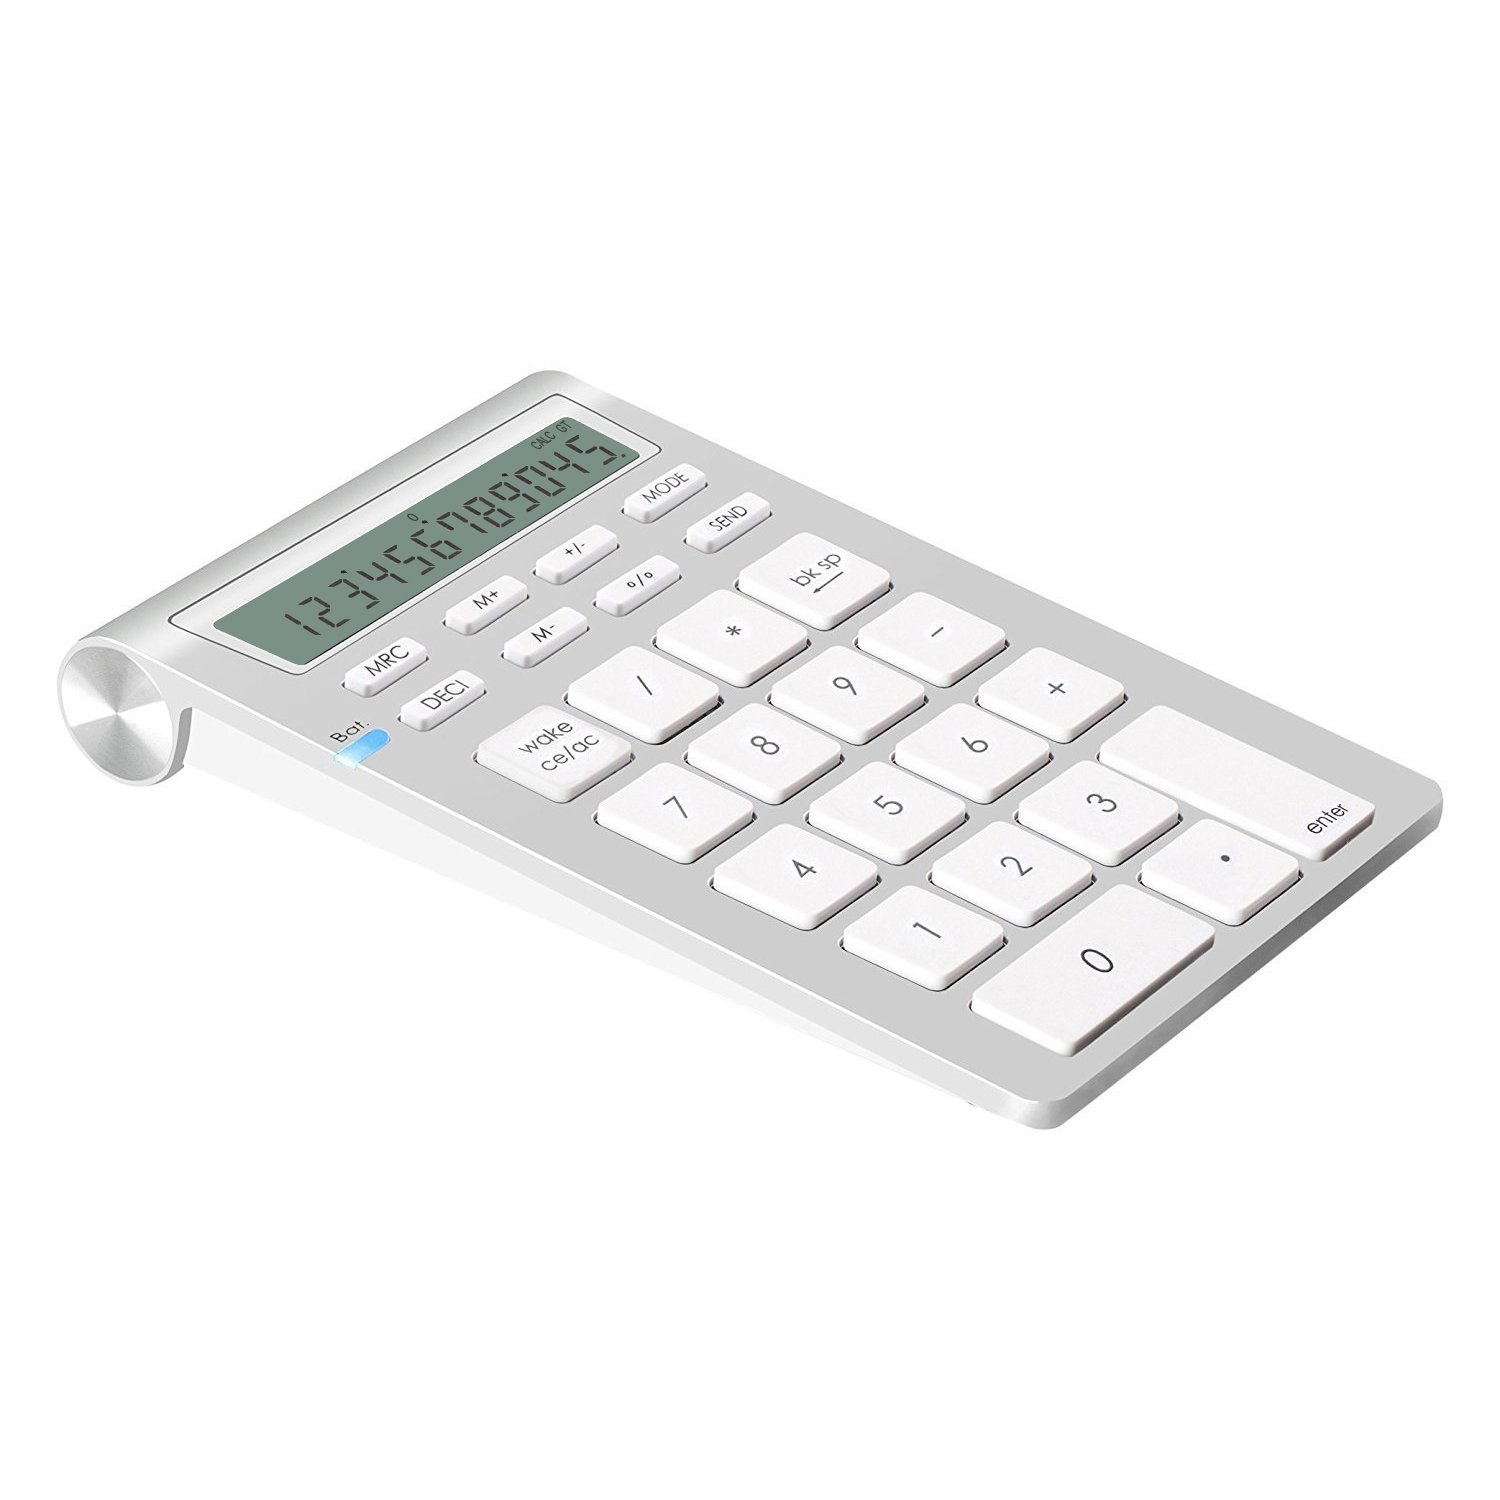 a06fa261003 Buy Alcey Wireless Bluetooth Numeric Keypad with Calculator function for  iMac, MacBooks,PCs and Laptops{Upgraded Version} in Cheap Price on  m.alibaba.com